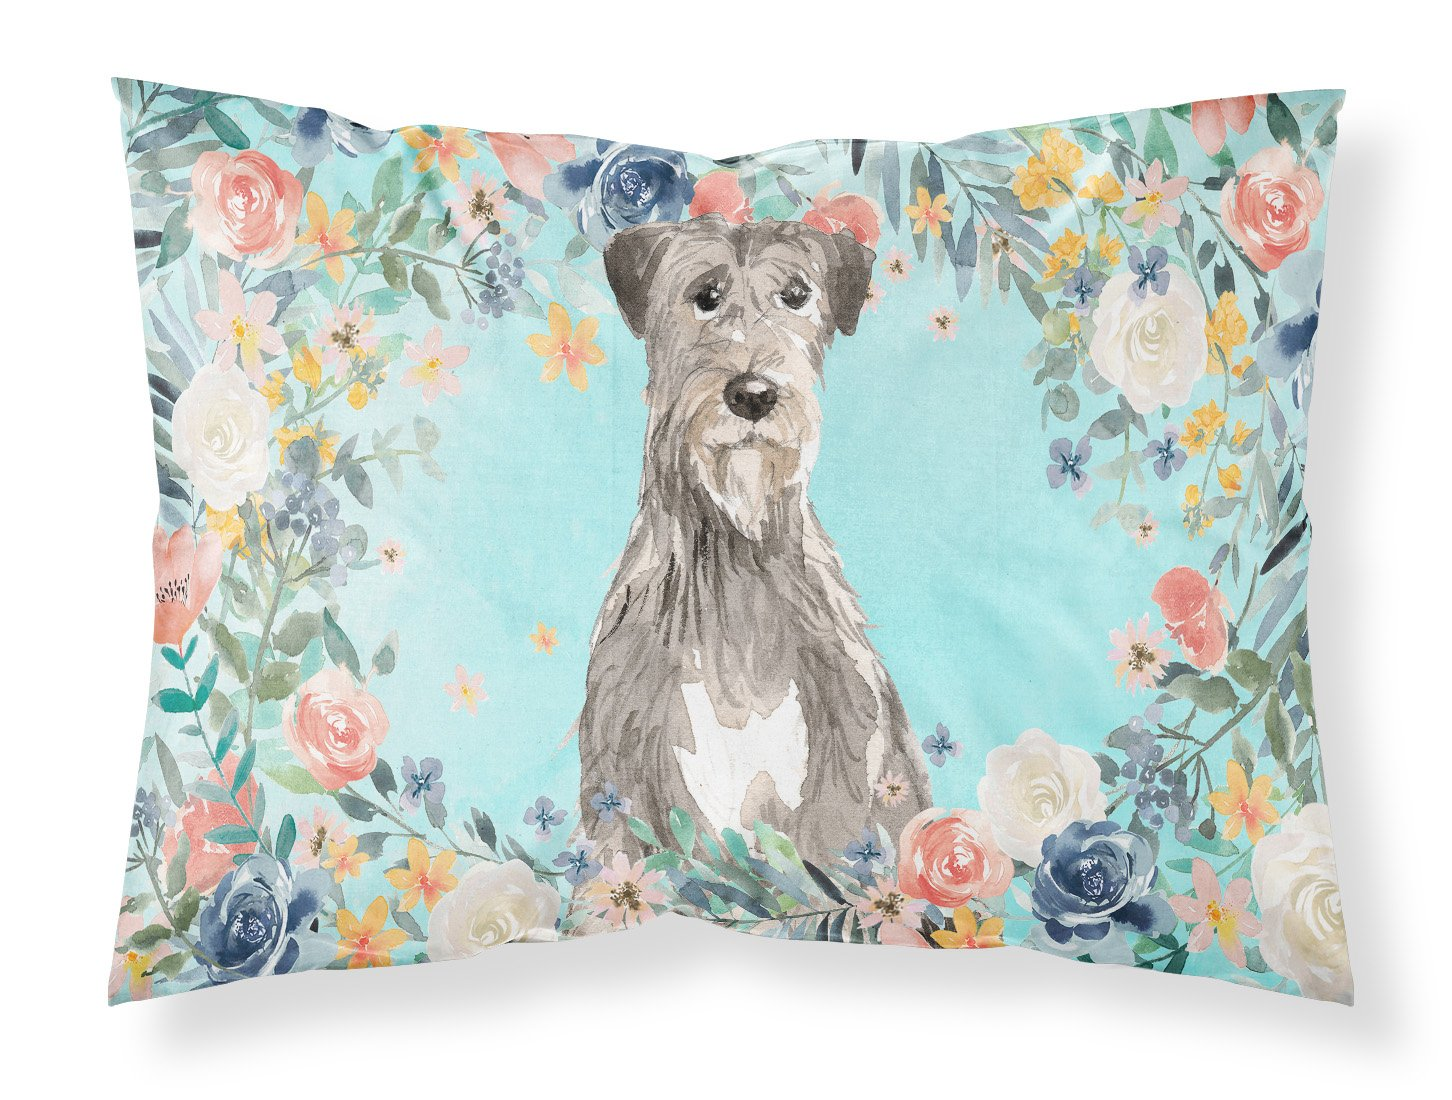 Buy this Irish Wolfhound Fabric Standard Pillowcase CK3423PILLOWCASE